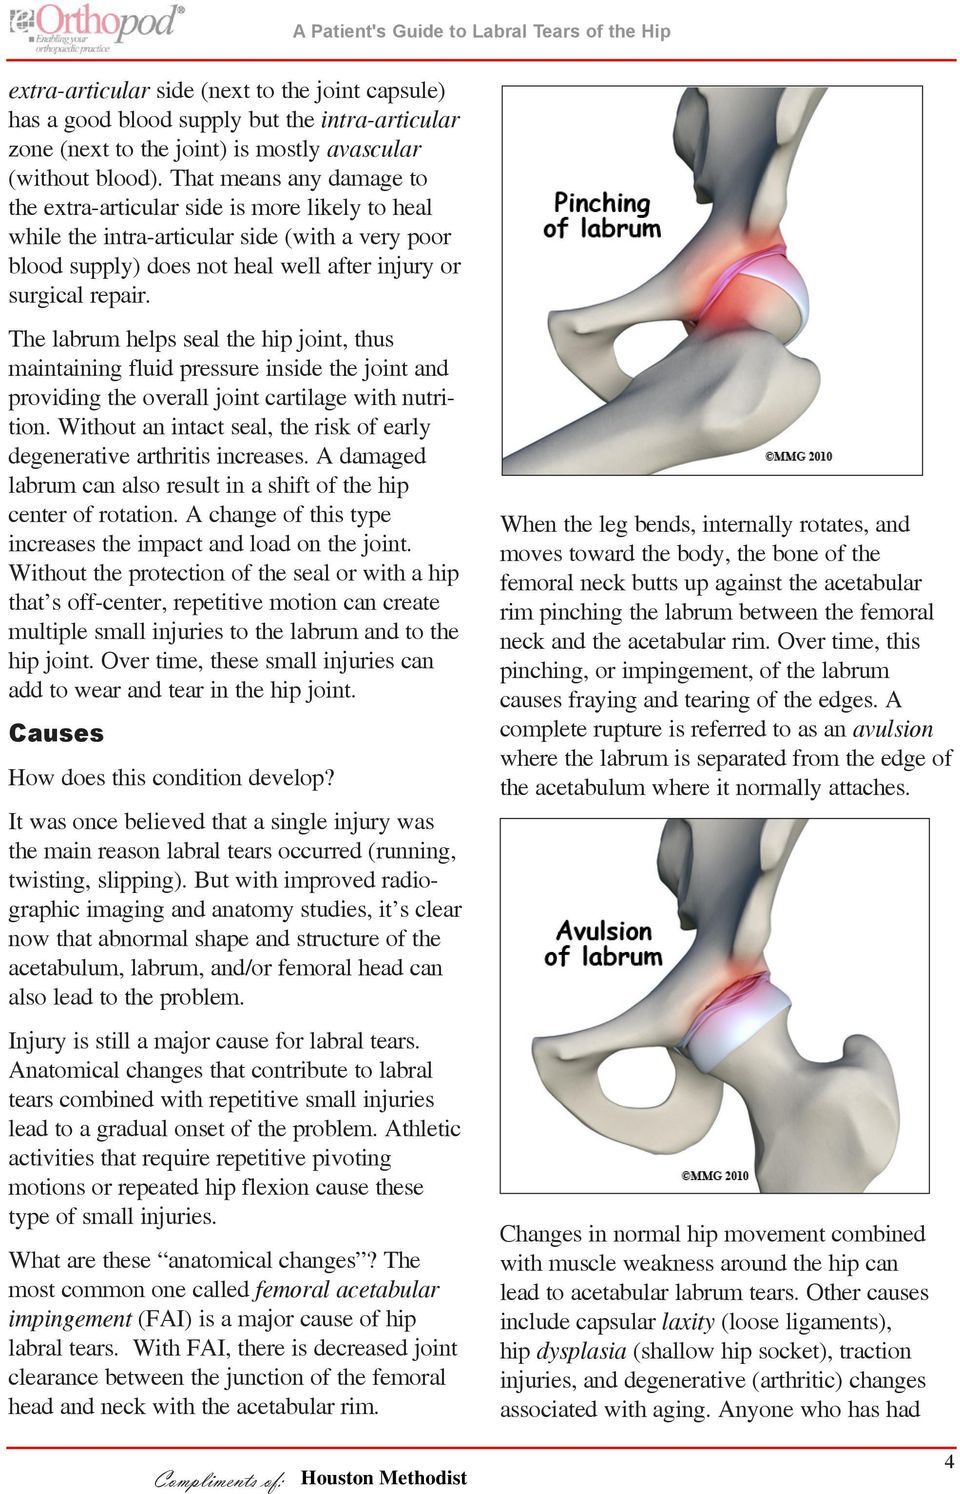 The labrum helps seal the hip joint, thus maintaining fluid pressure inside the joint and providing the overall joint cartilage with nutrition.